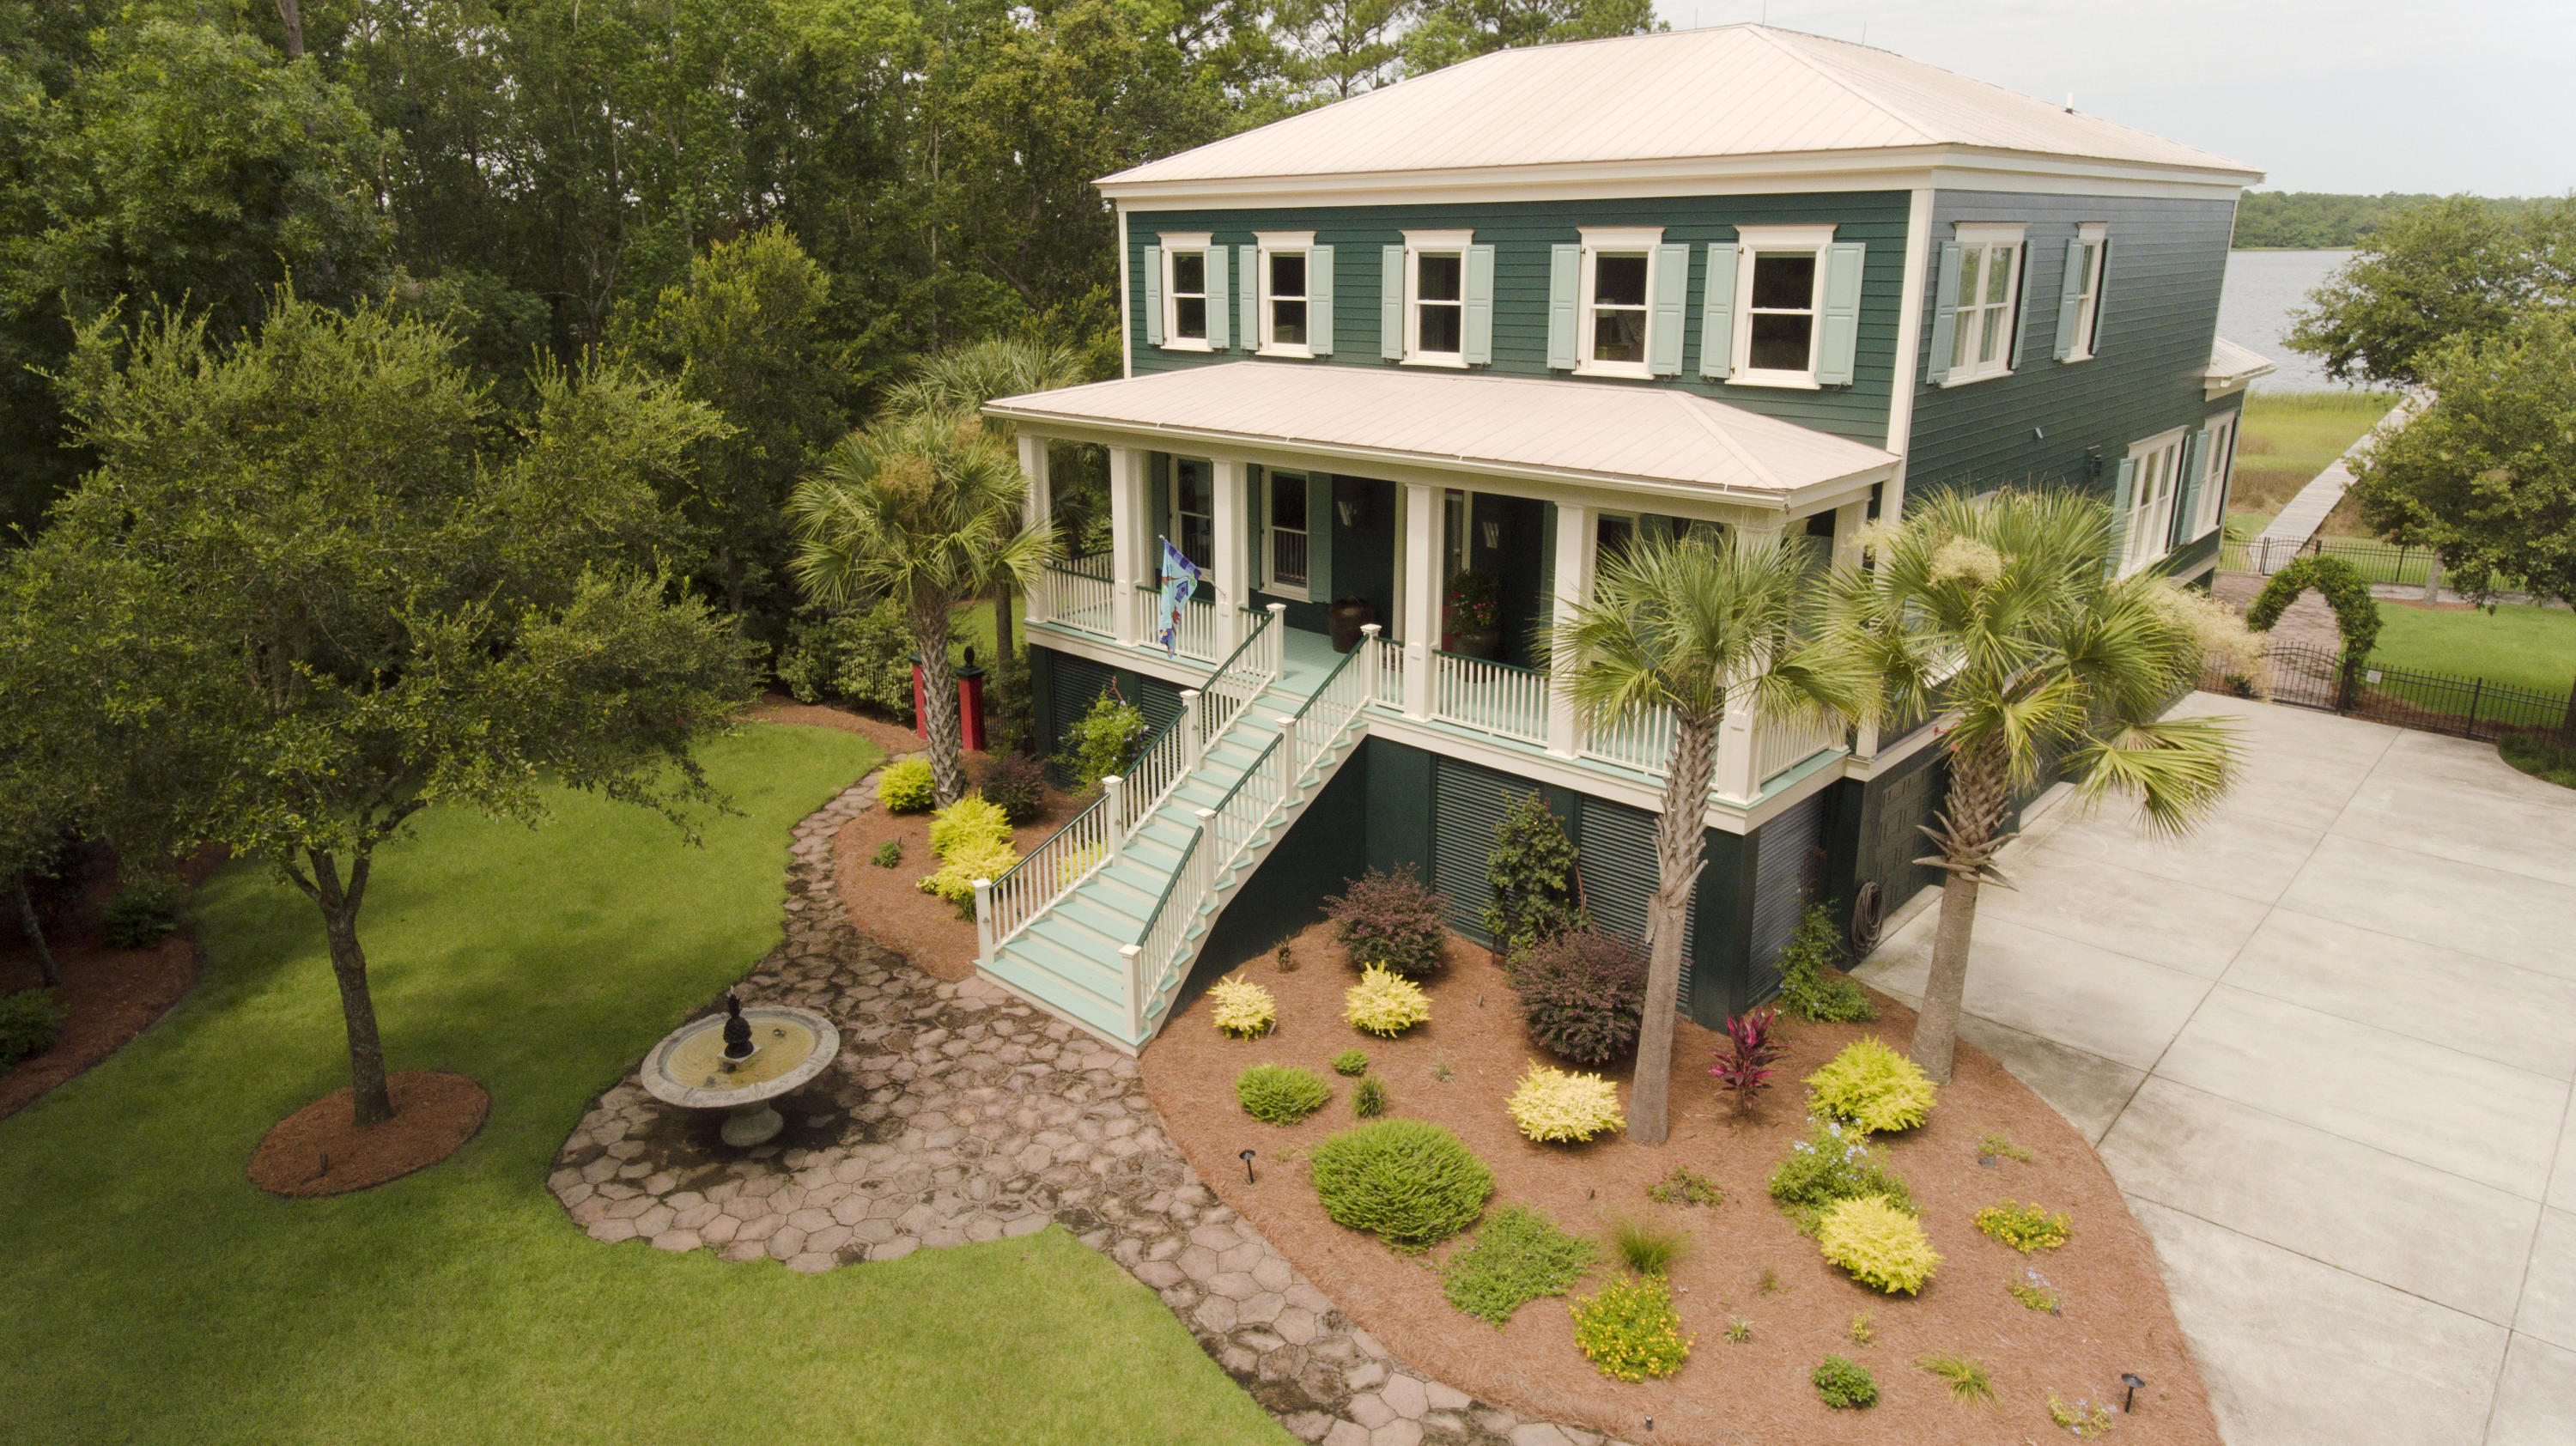 Rivertowne On The Wando Homes For Sale - 2212 Hartfords Bluff, Mount Pleasant, SC - 37